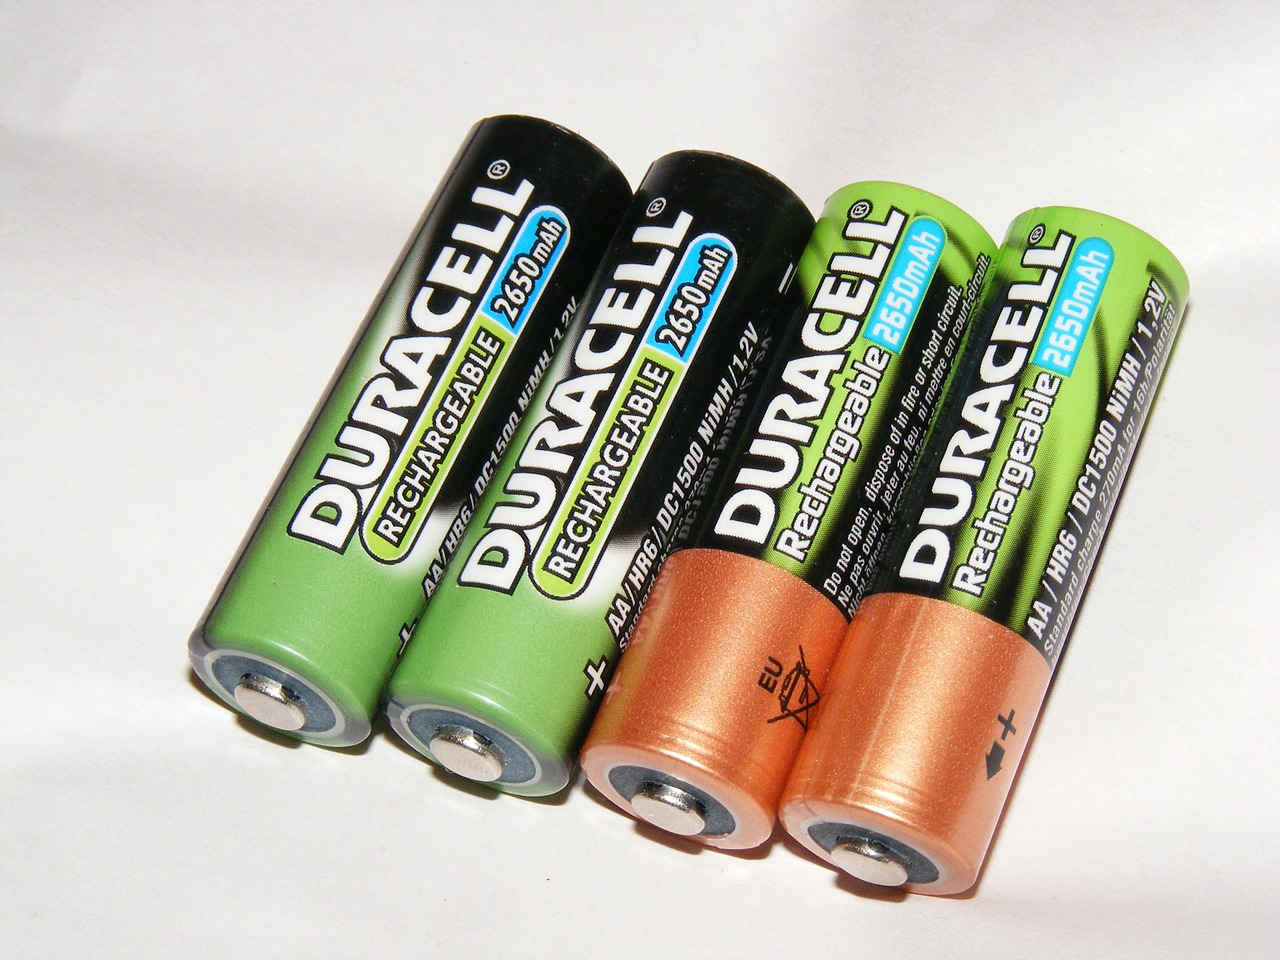 How Many Aa Batteries Would It Take To Power A Mercedes Is Calculated With The Other Battery Replaced By Short Circuit Sustainable Nano